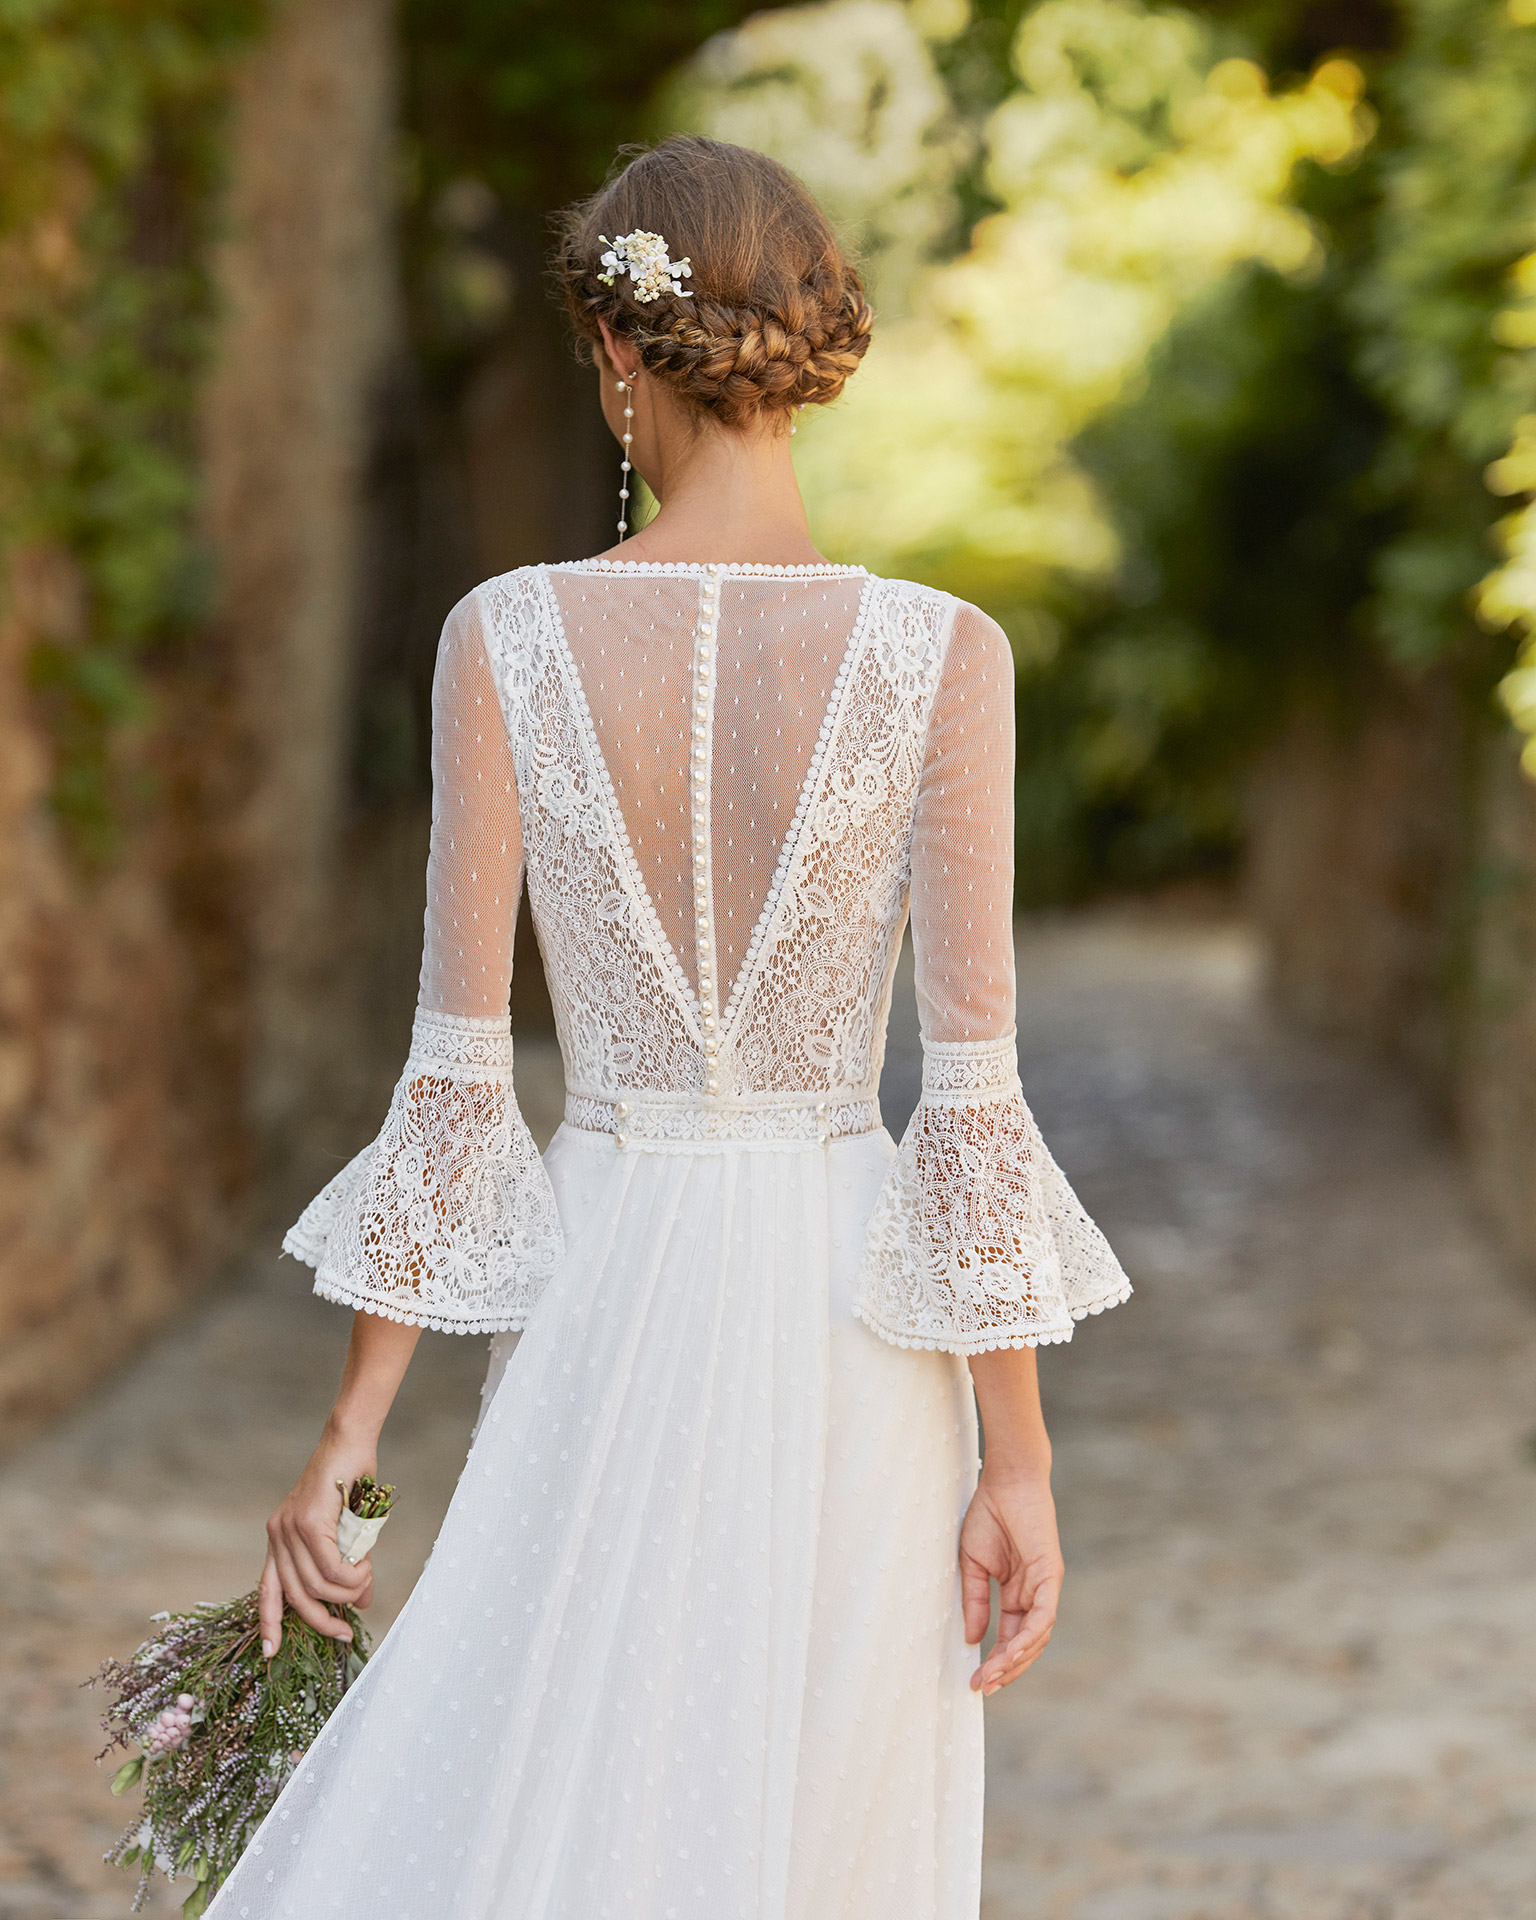 Boho-chic ballgown-style wedding dress with a lace bodice and detachable train; With a V-neckline, a closed back with dot tulle and pearl buttons, and three-quarter sleeves with a lace flounce. Alma Novia model in polka-dot chiffon. 2022 ALMANOVIA Collection.